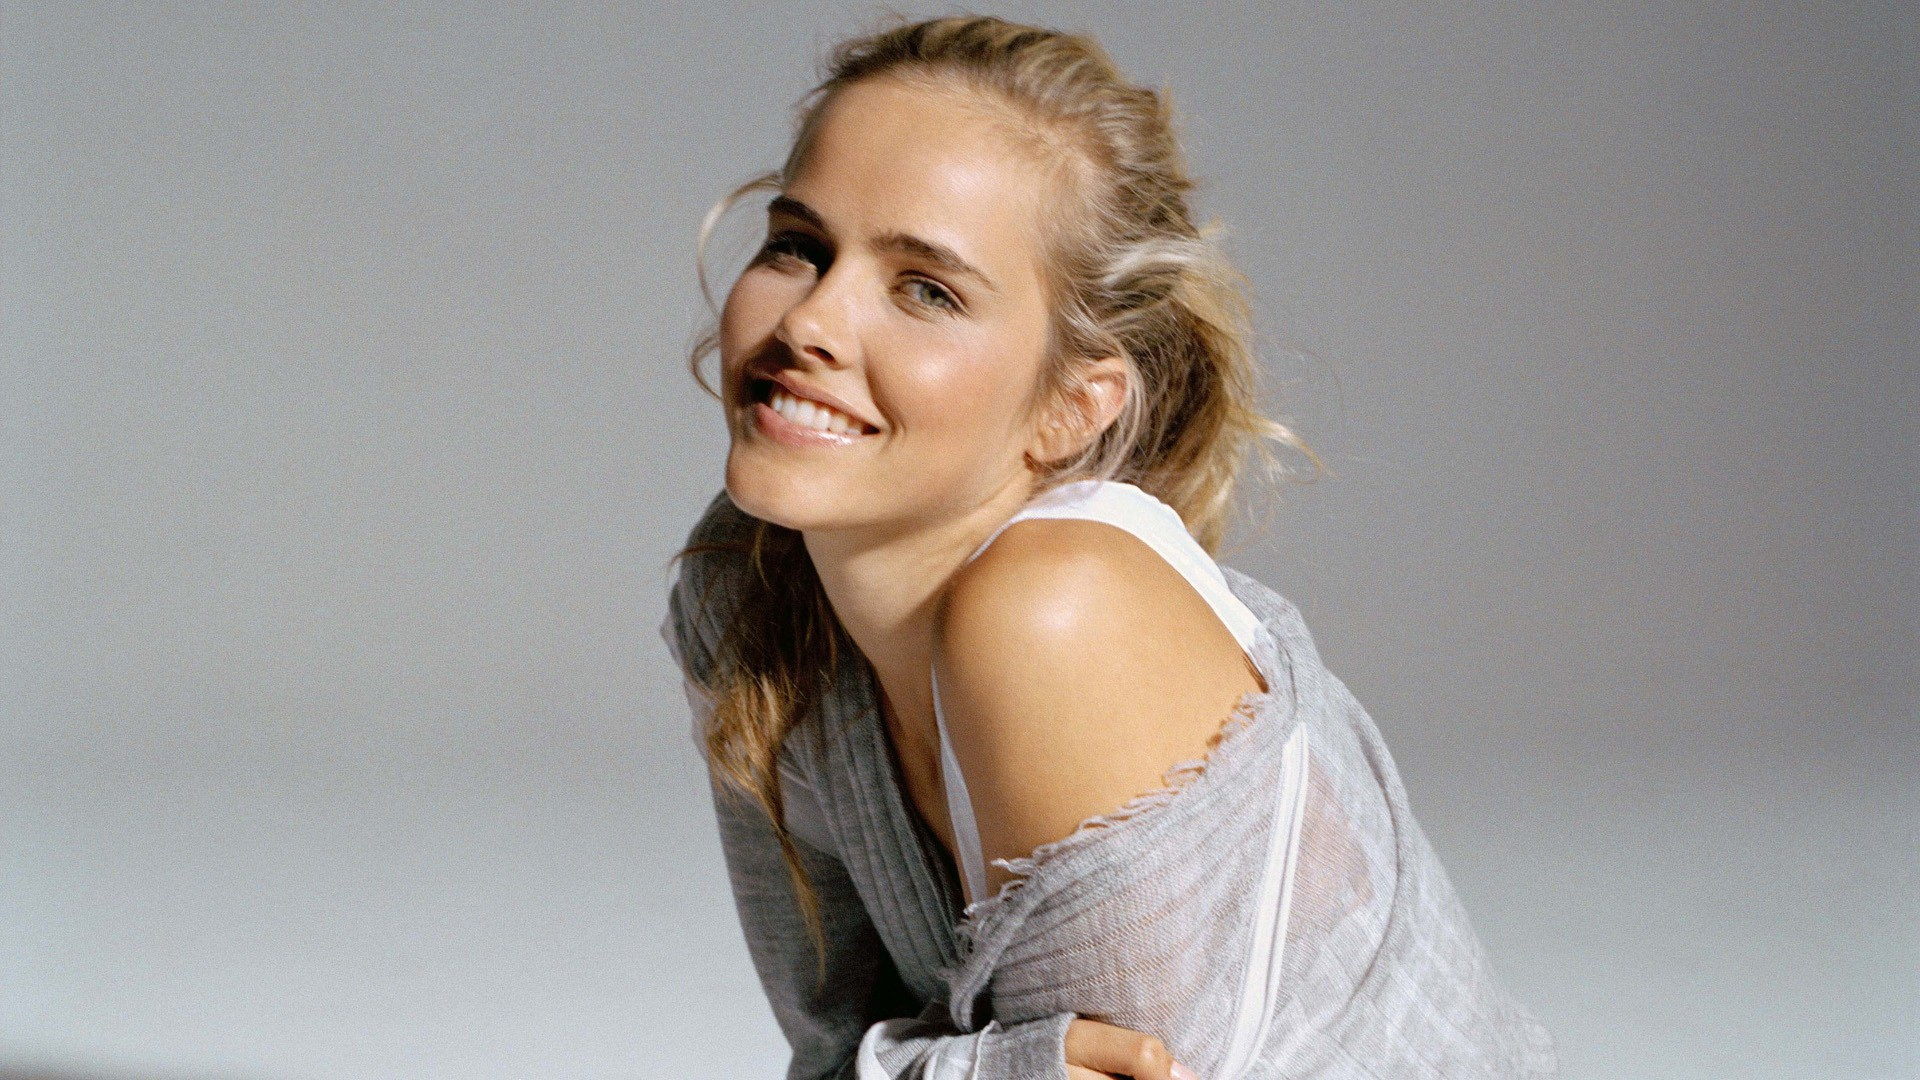 Cute Isabel Lucas Wallpaper 24877